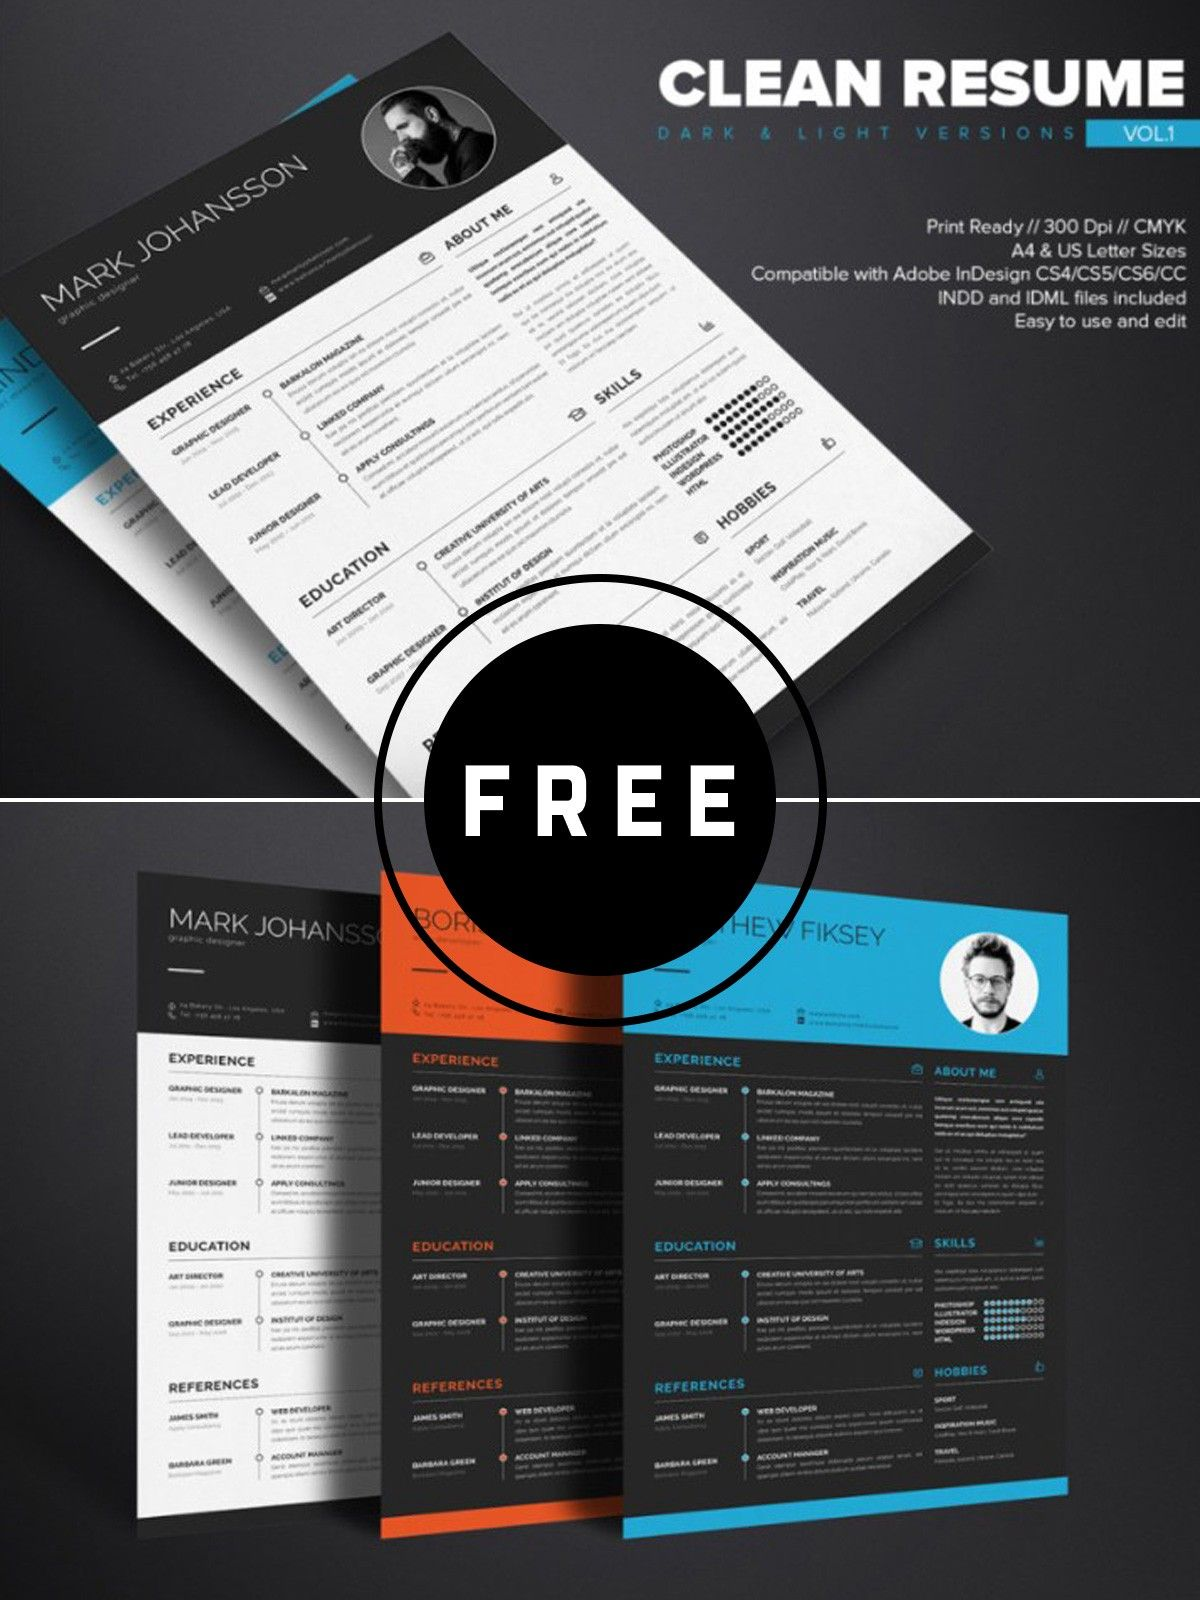 100 free best resume templates for 2019